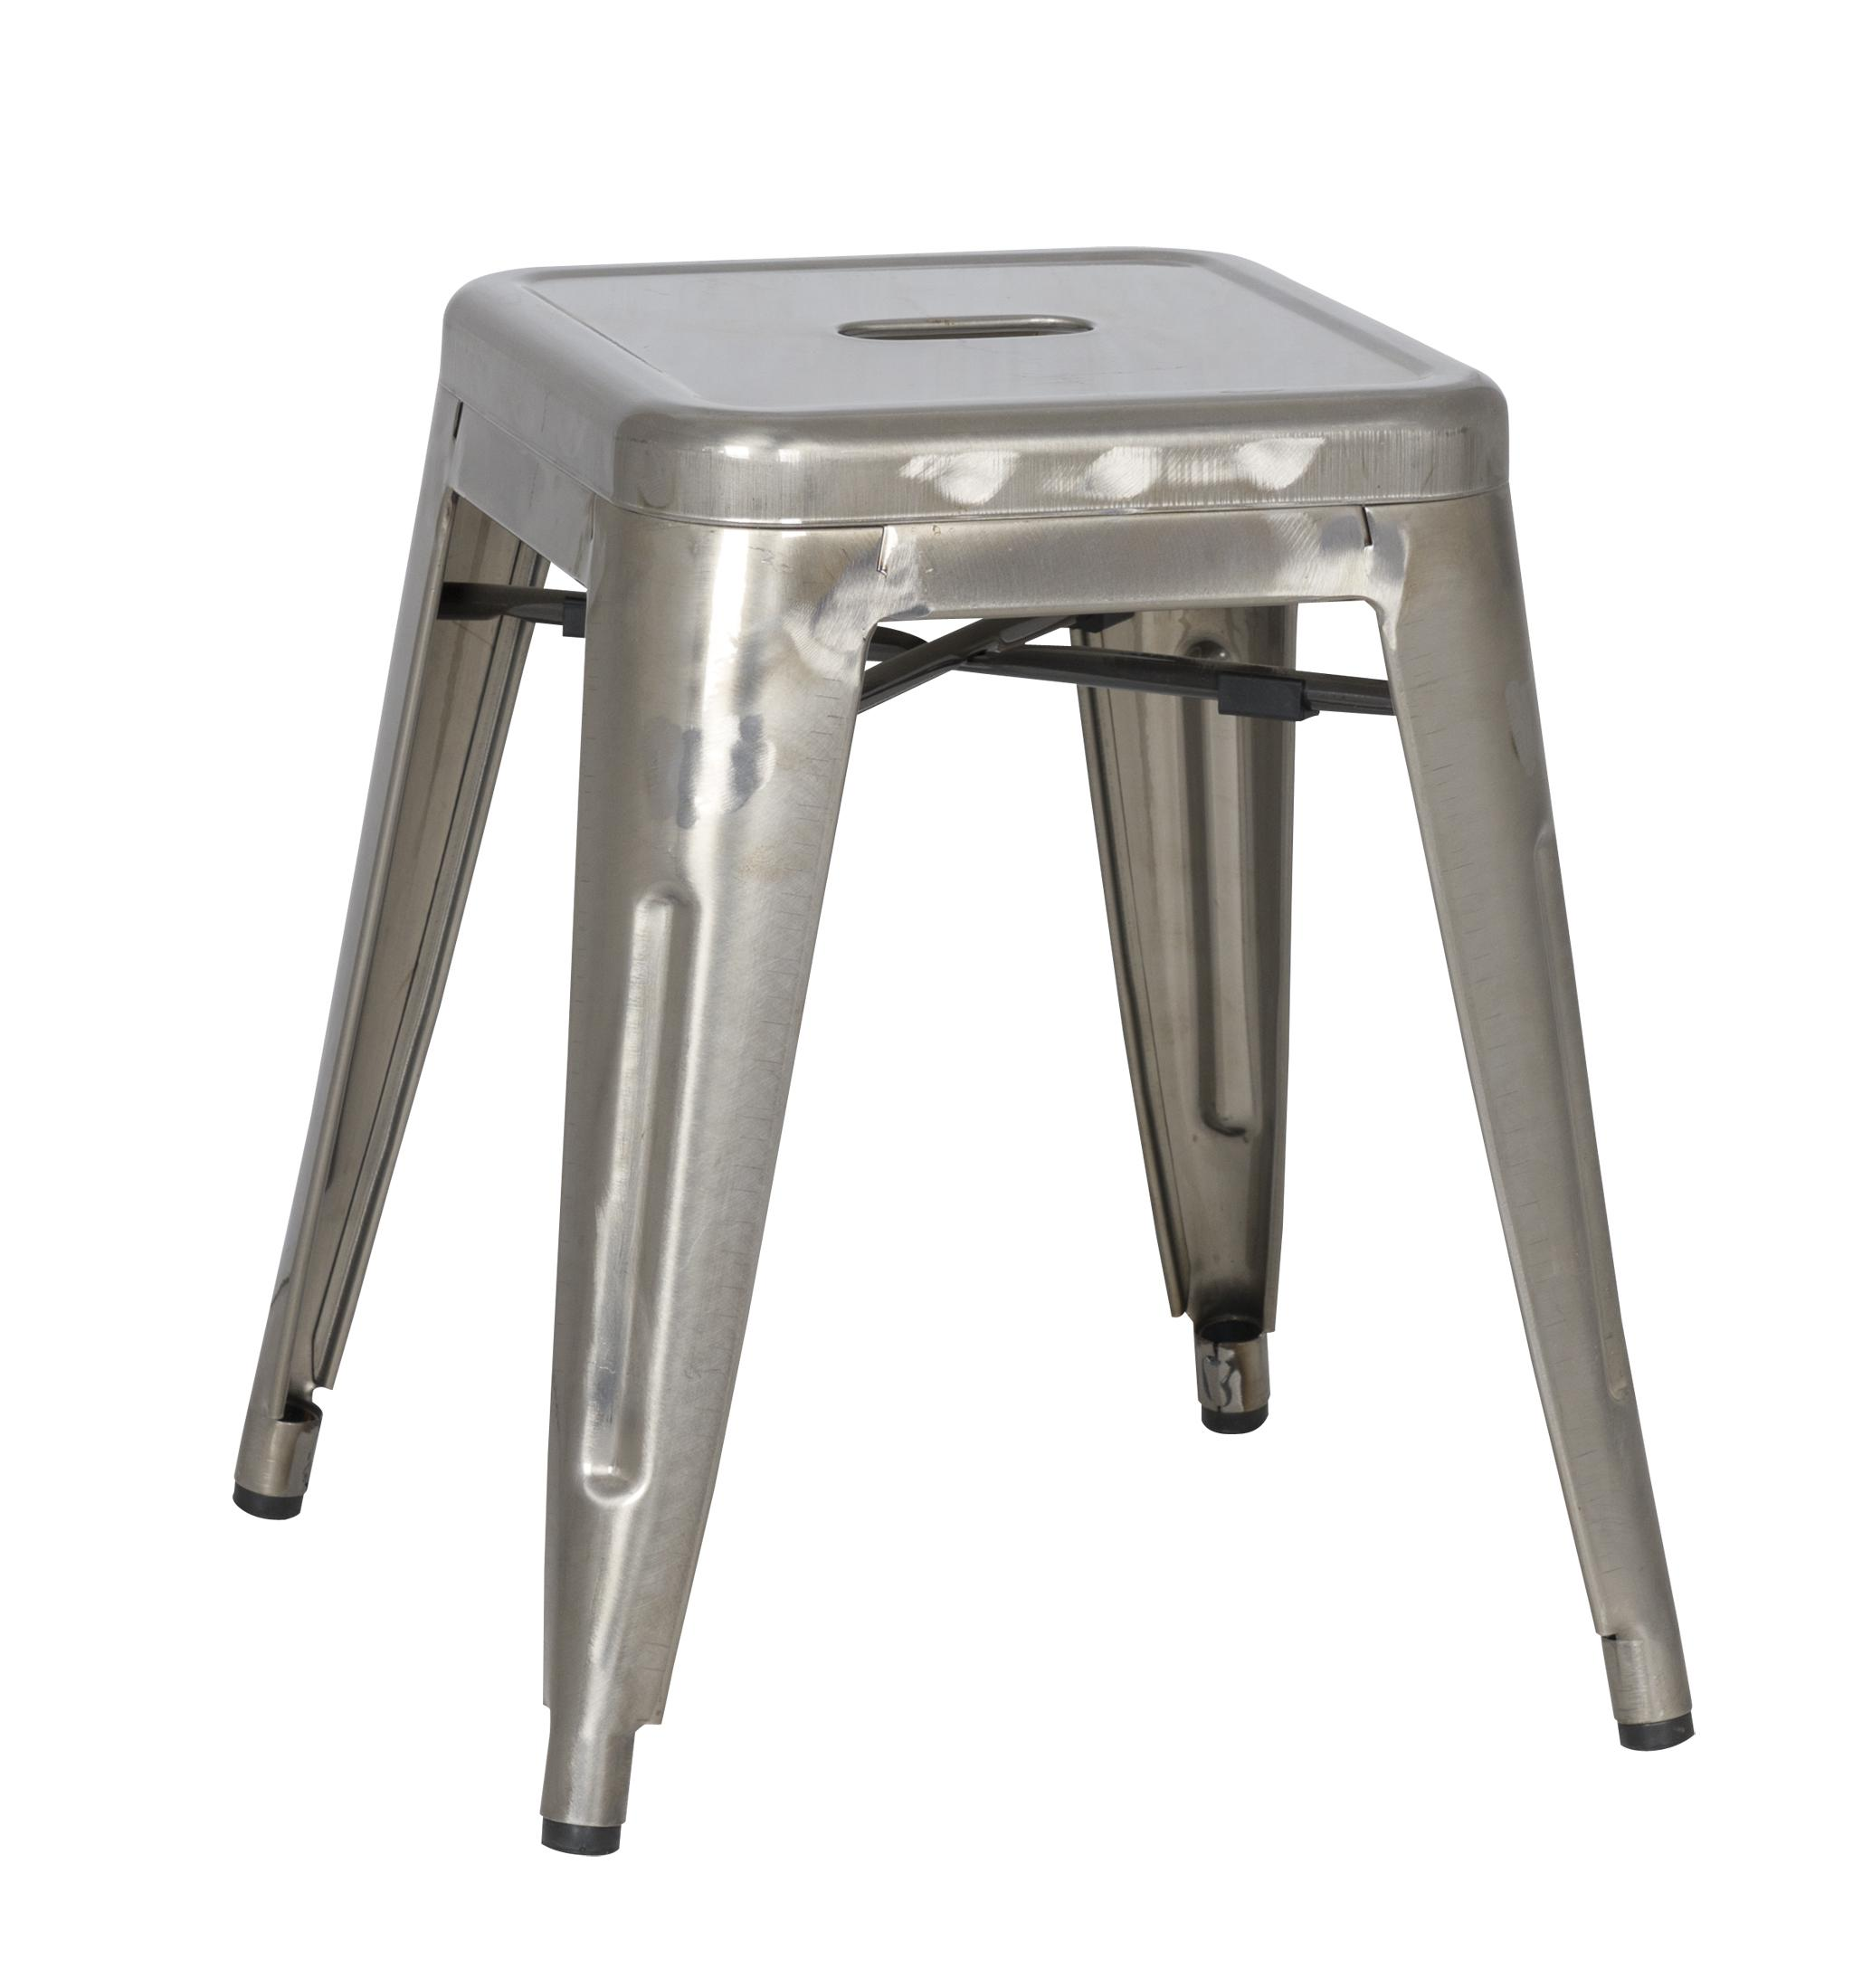 Vintage Metal Dining Table 18 High Vintage Metal Dining Stool By Magnussen Home Wolf And